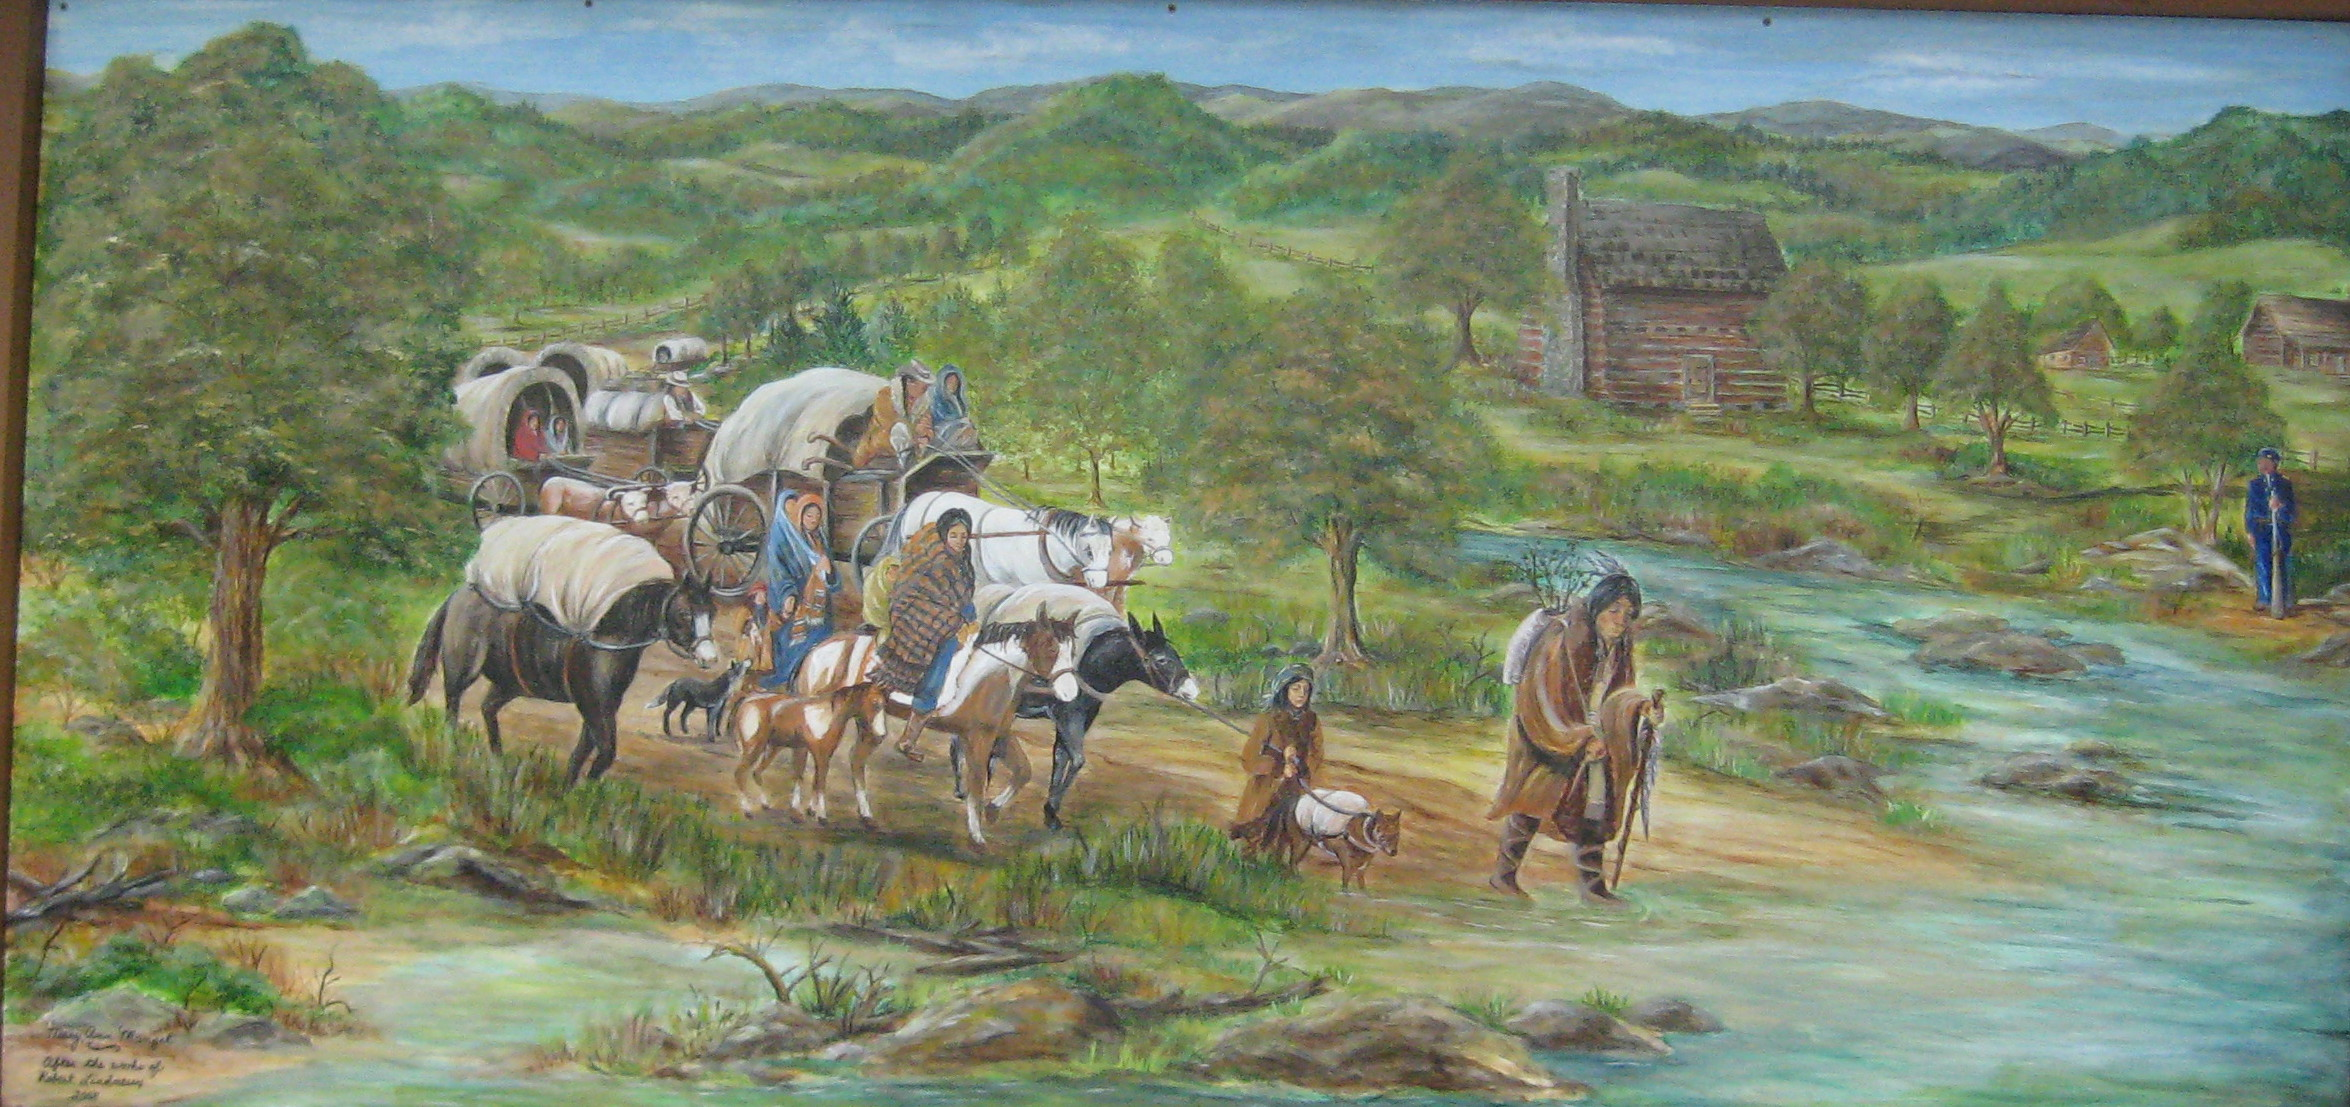 the hard times of the cherokee indiand in the 19th century